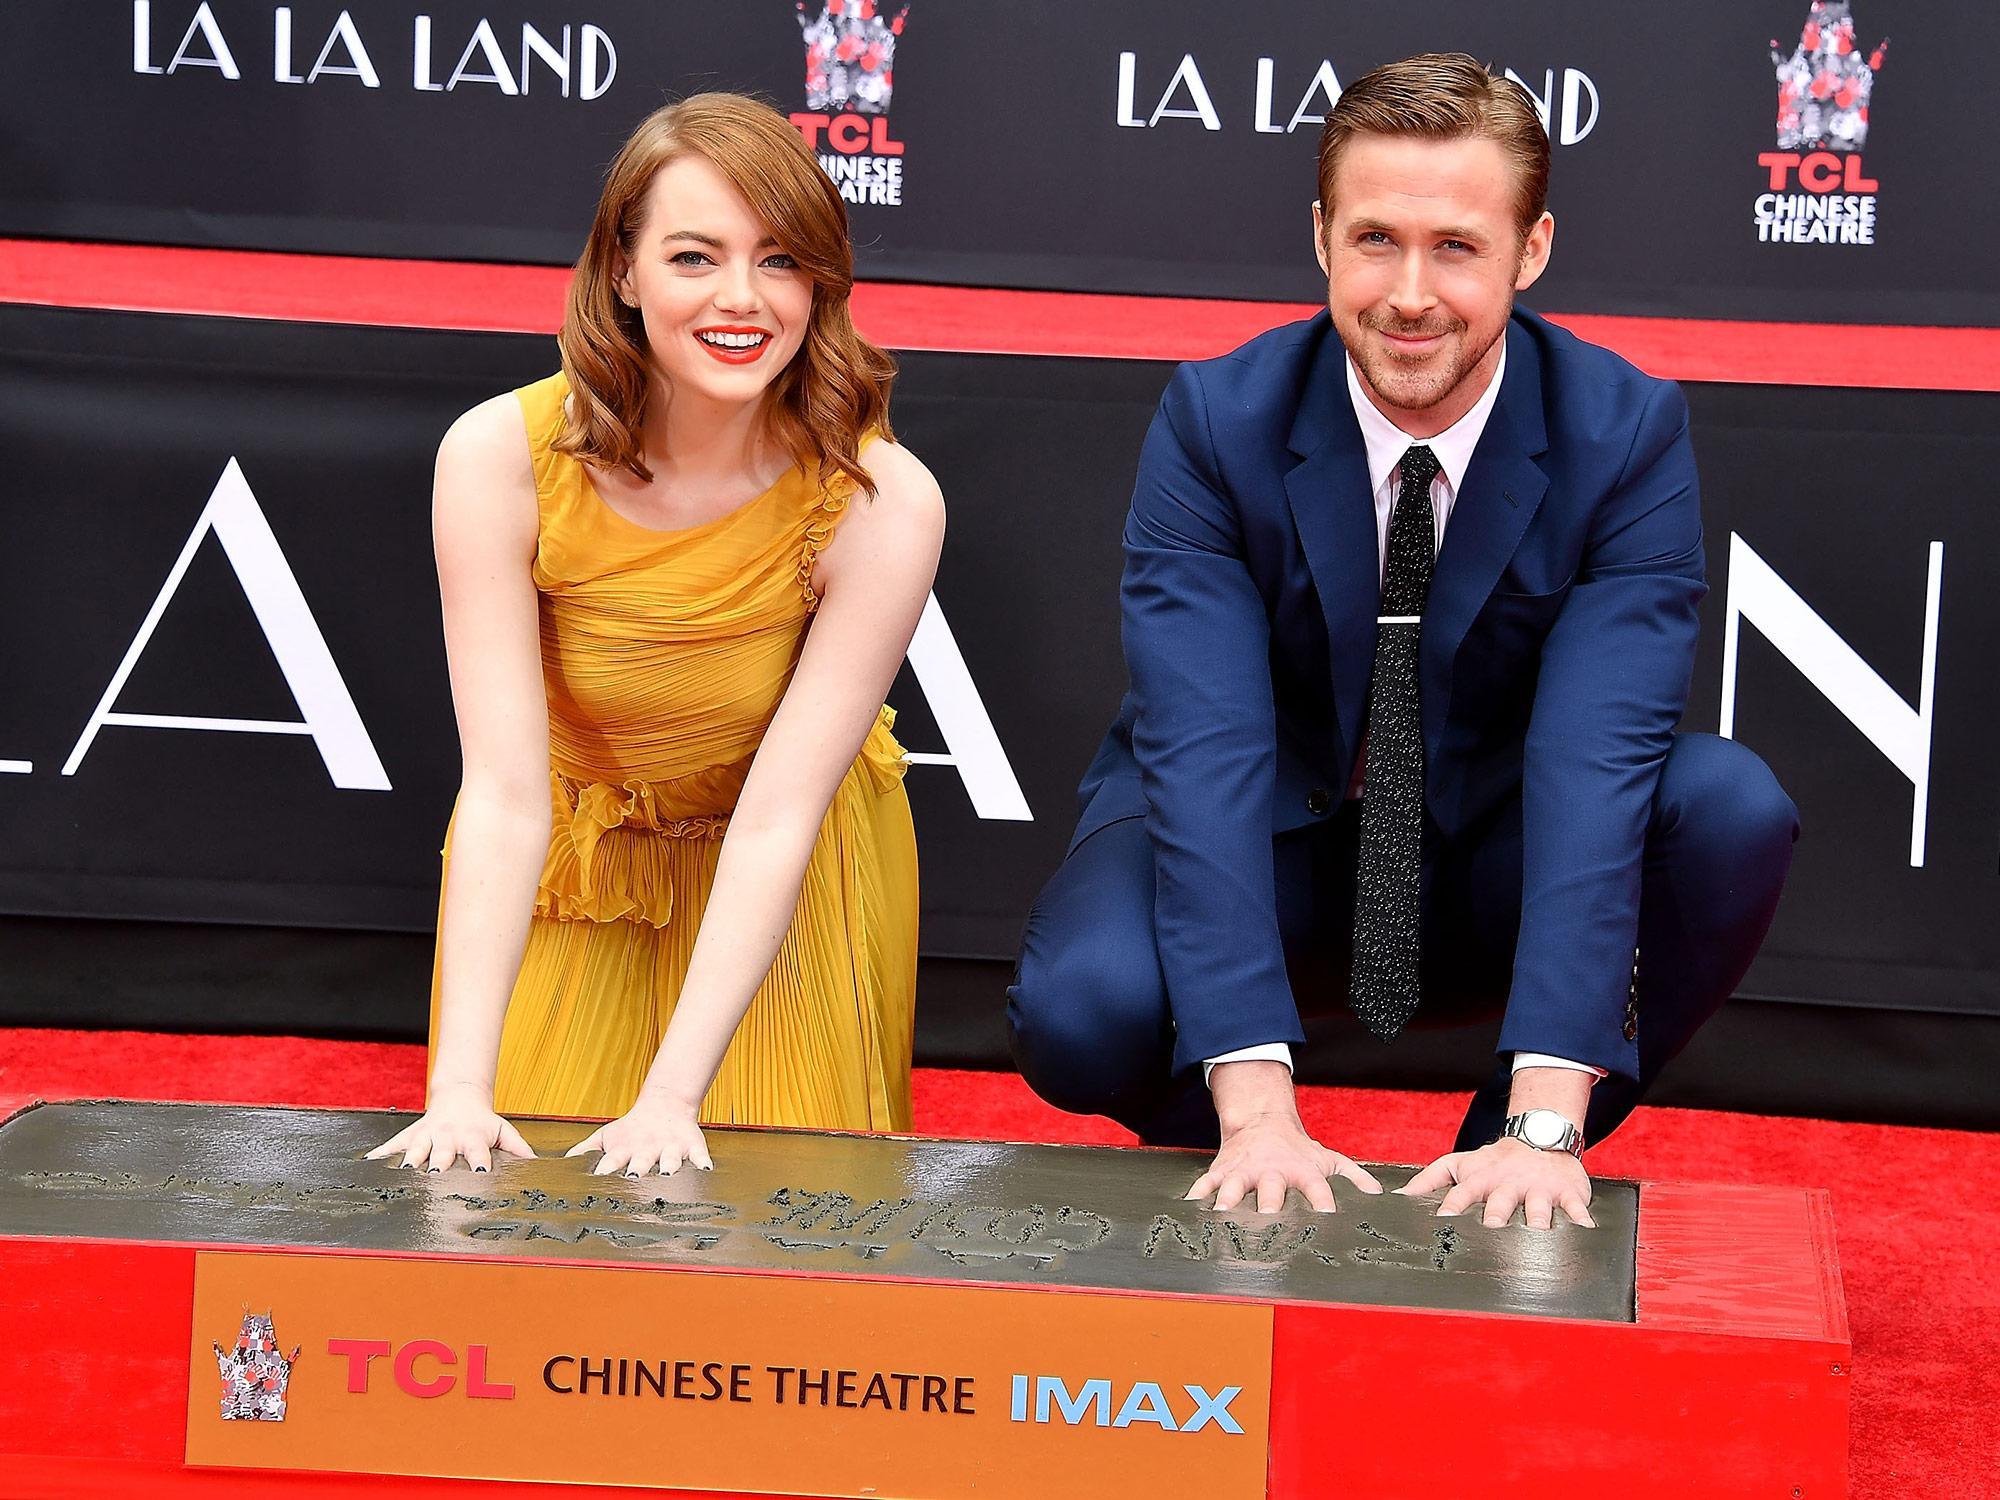 All of The Impossibly Adorable Photos of Ryan Gosling and Emma Stone at Their Hand and Footprint Ceremony